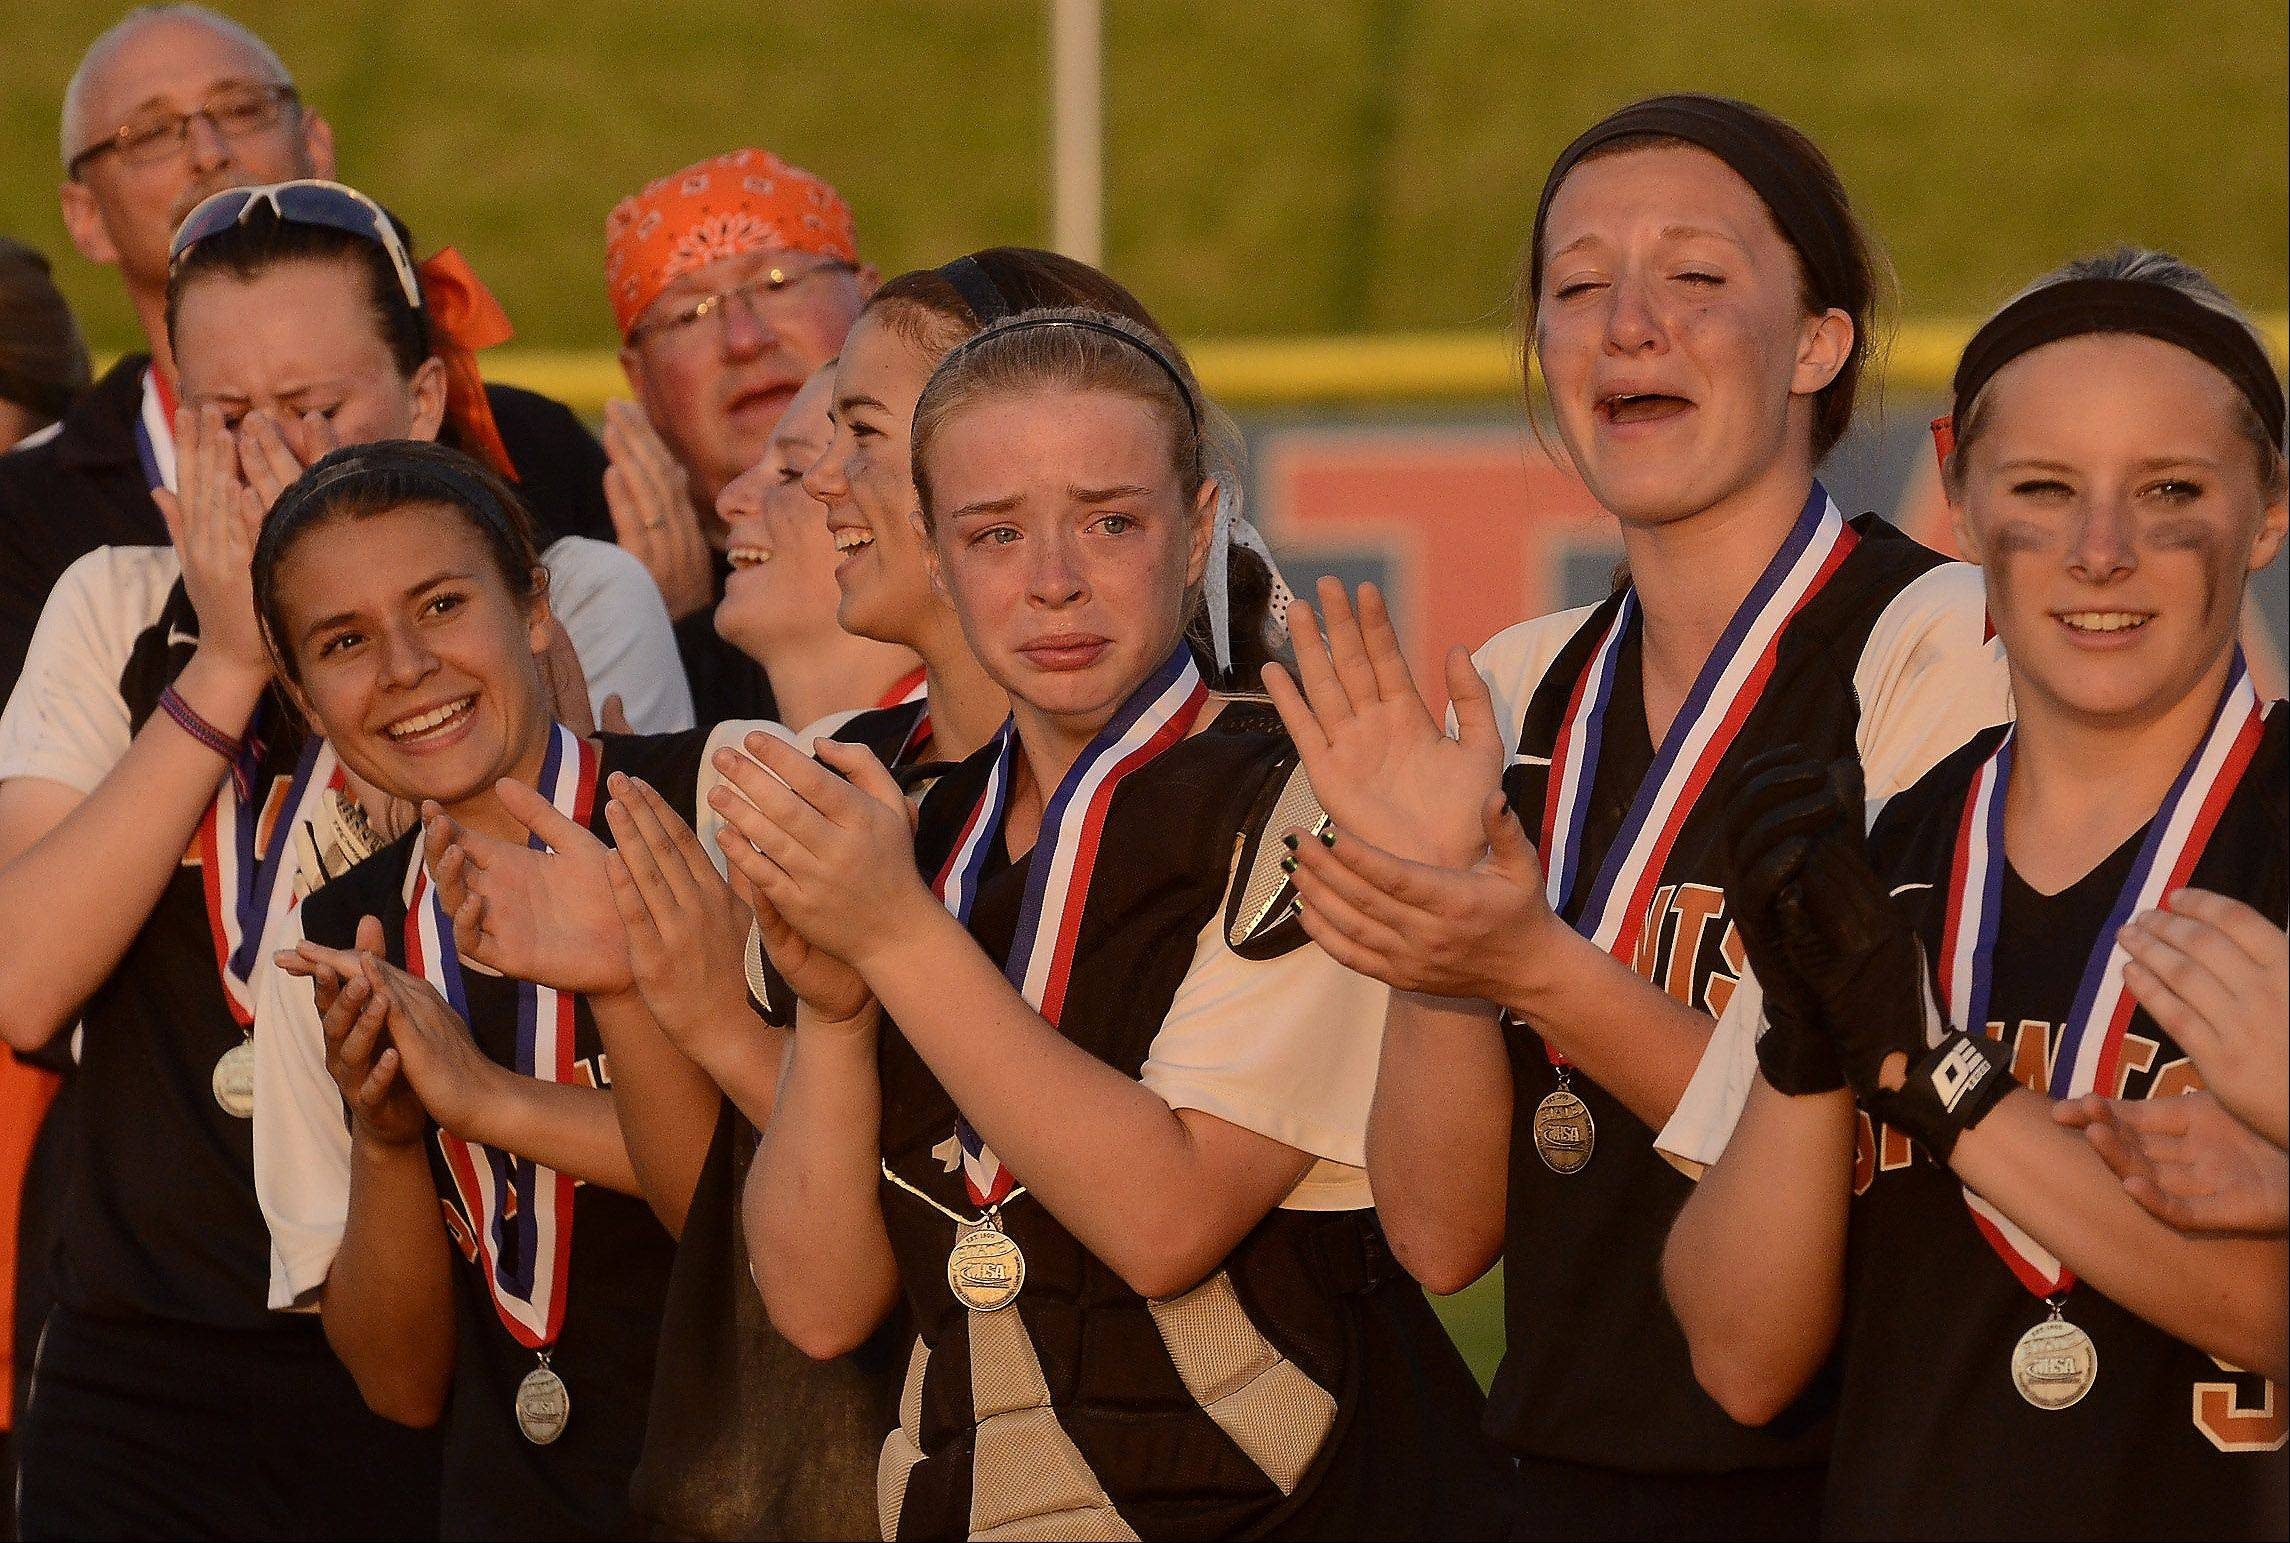 Among tears and smiles, St. Charles East players receive their 2nd place medals after losing to Minooka in the Class 4A softball championship game.